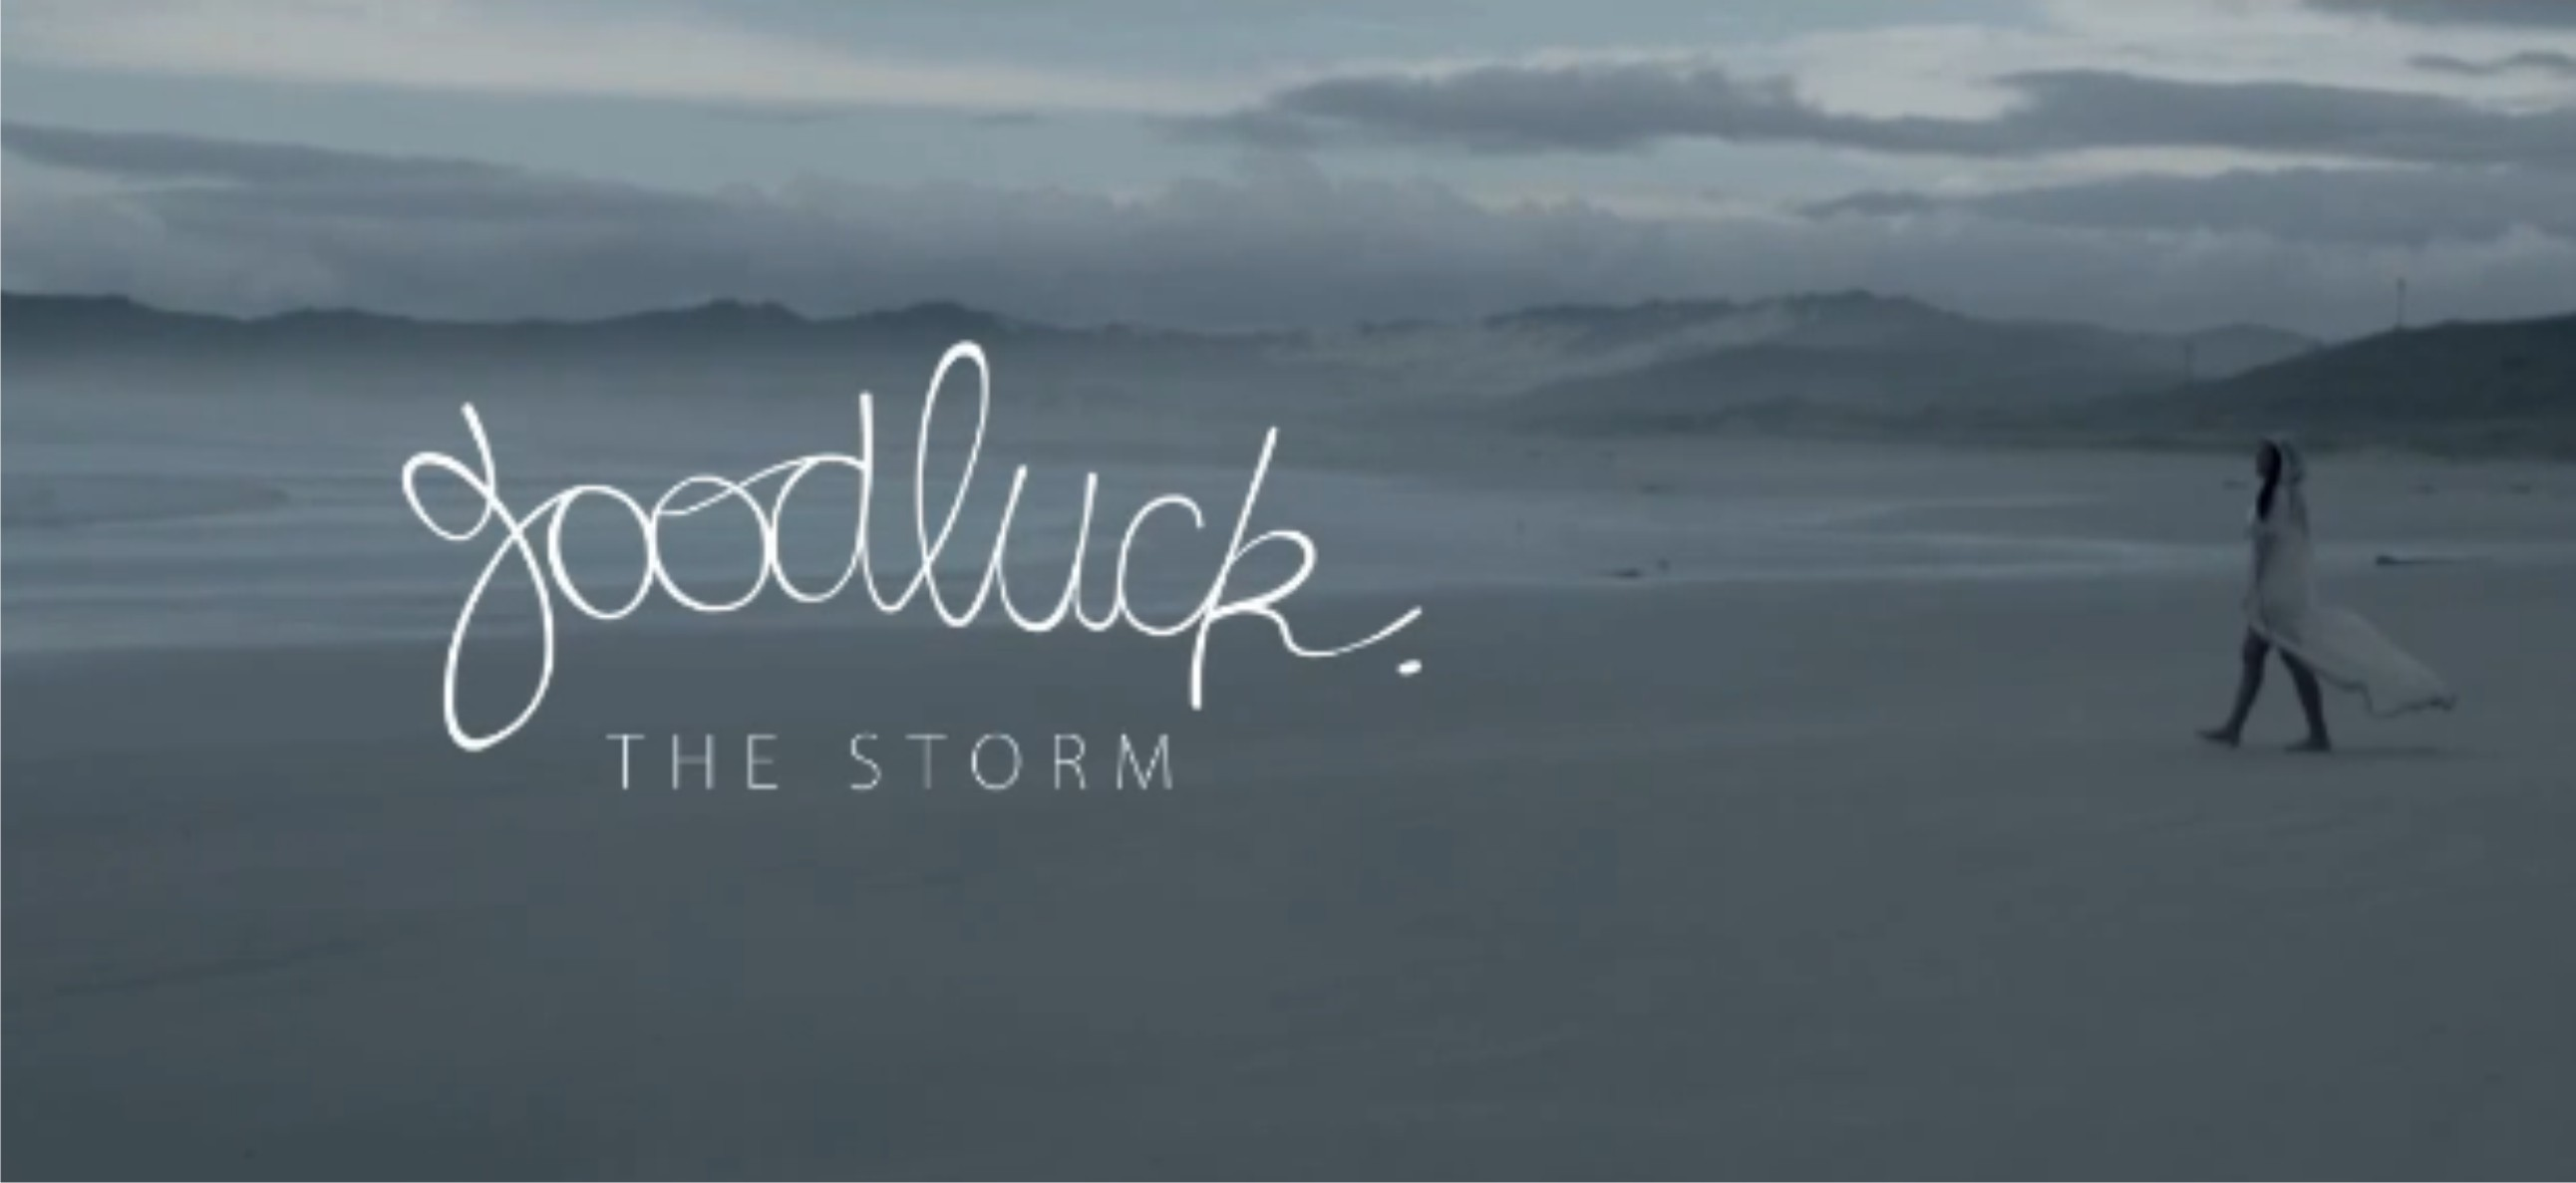 GoodLuck release their The Storm music video to the South African music scene